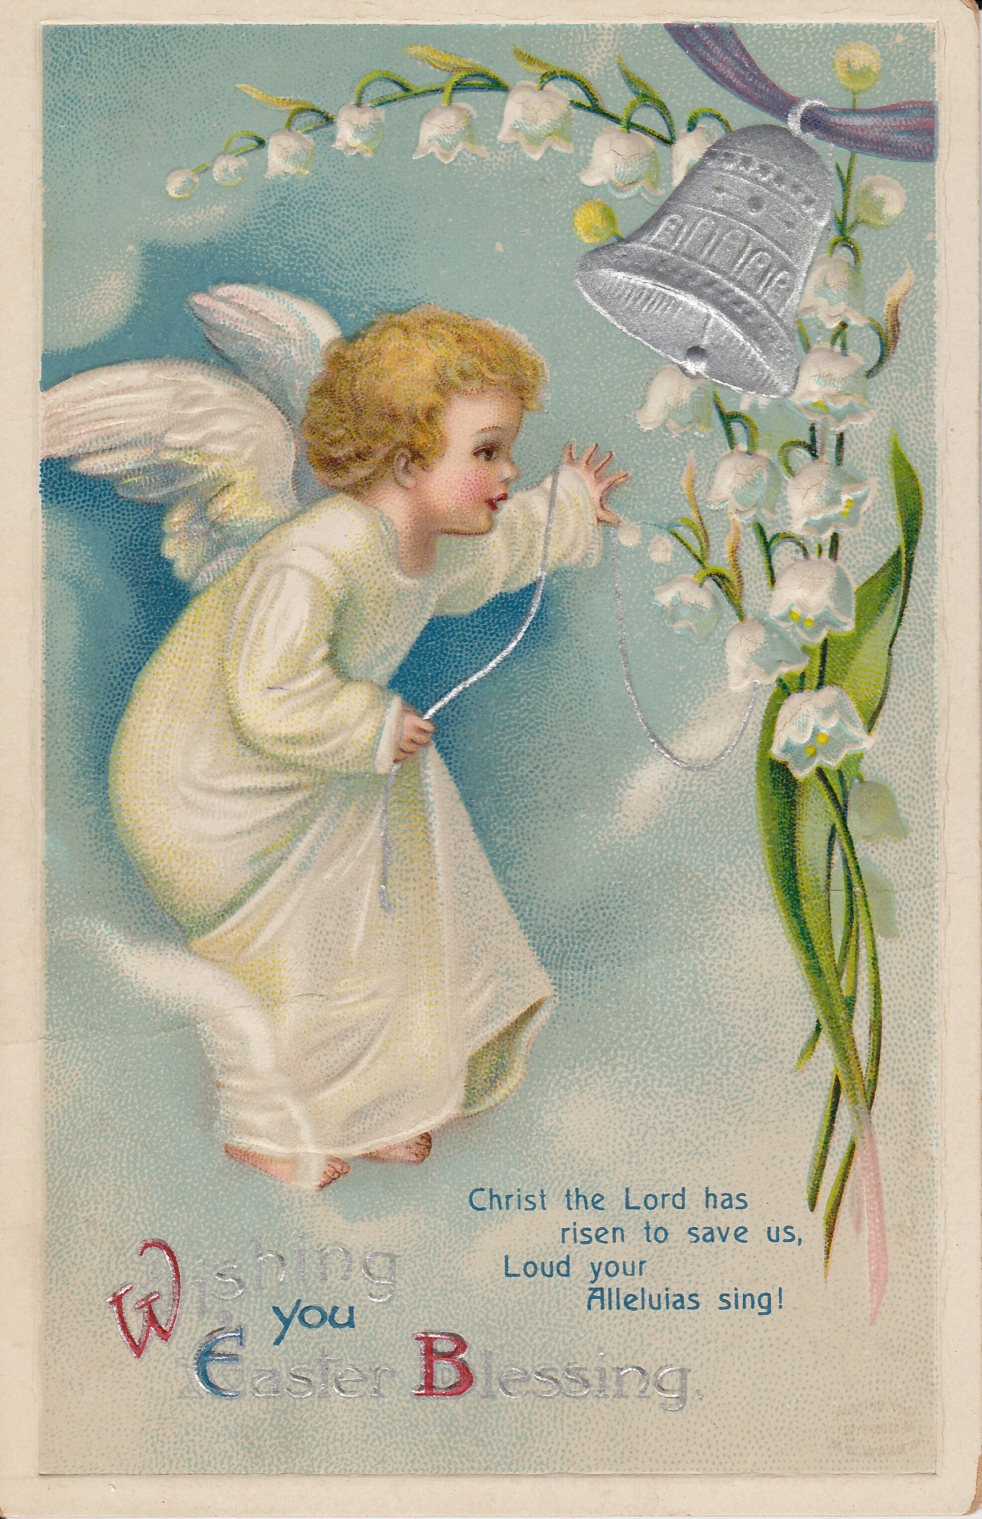 Wings of Whimsy: Wishing You Easter Blessing - free for personal use #vintage #ephemera #printable #freebie #easter